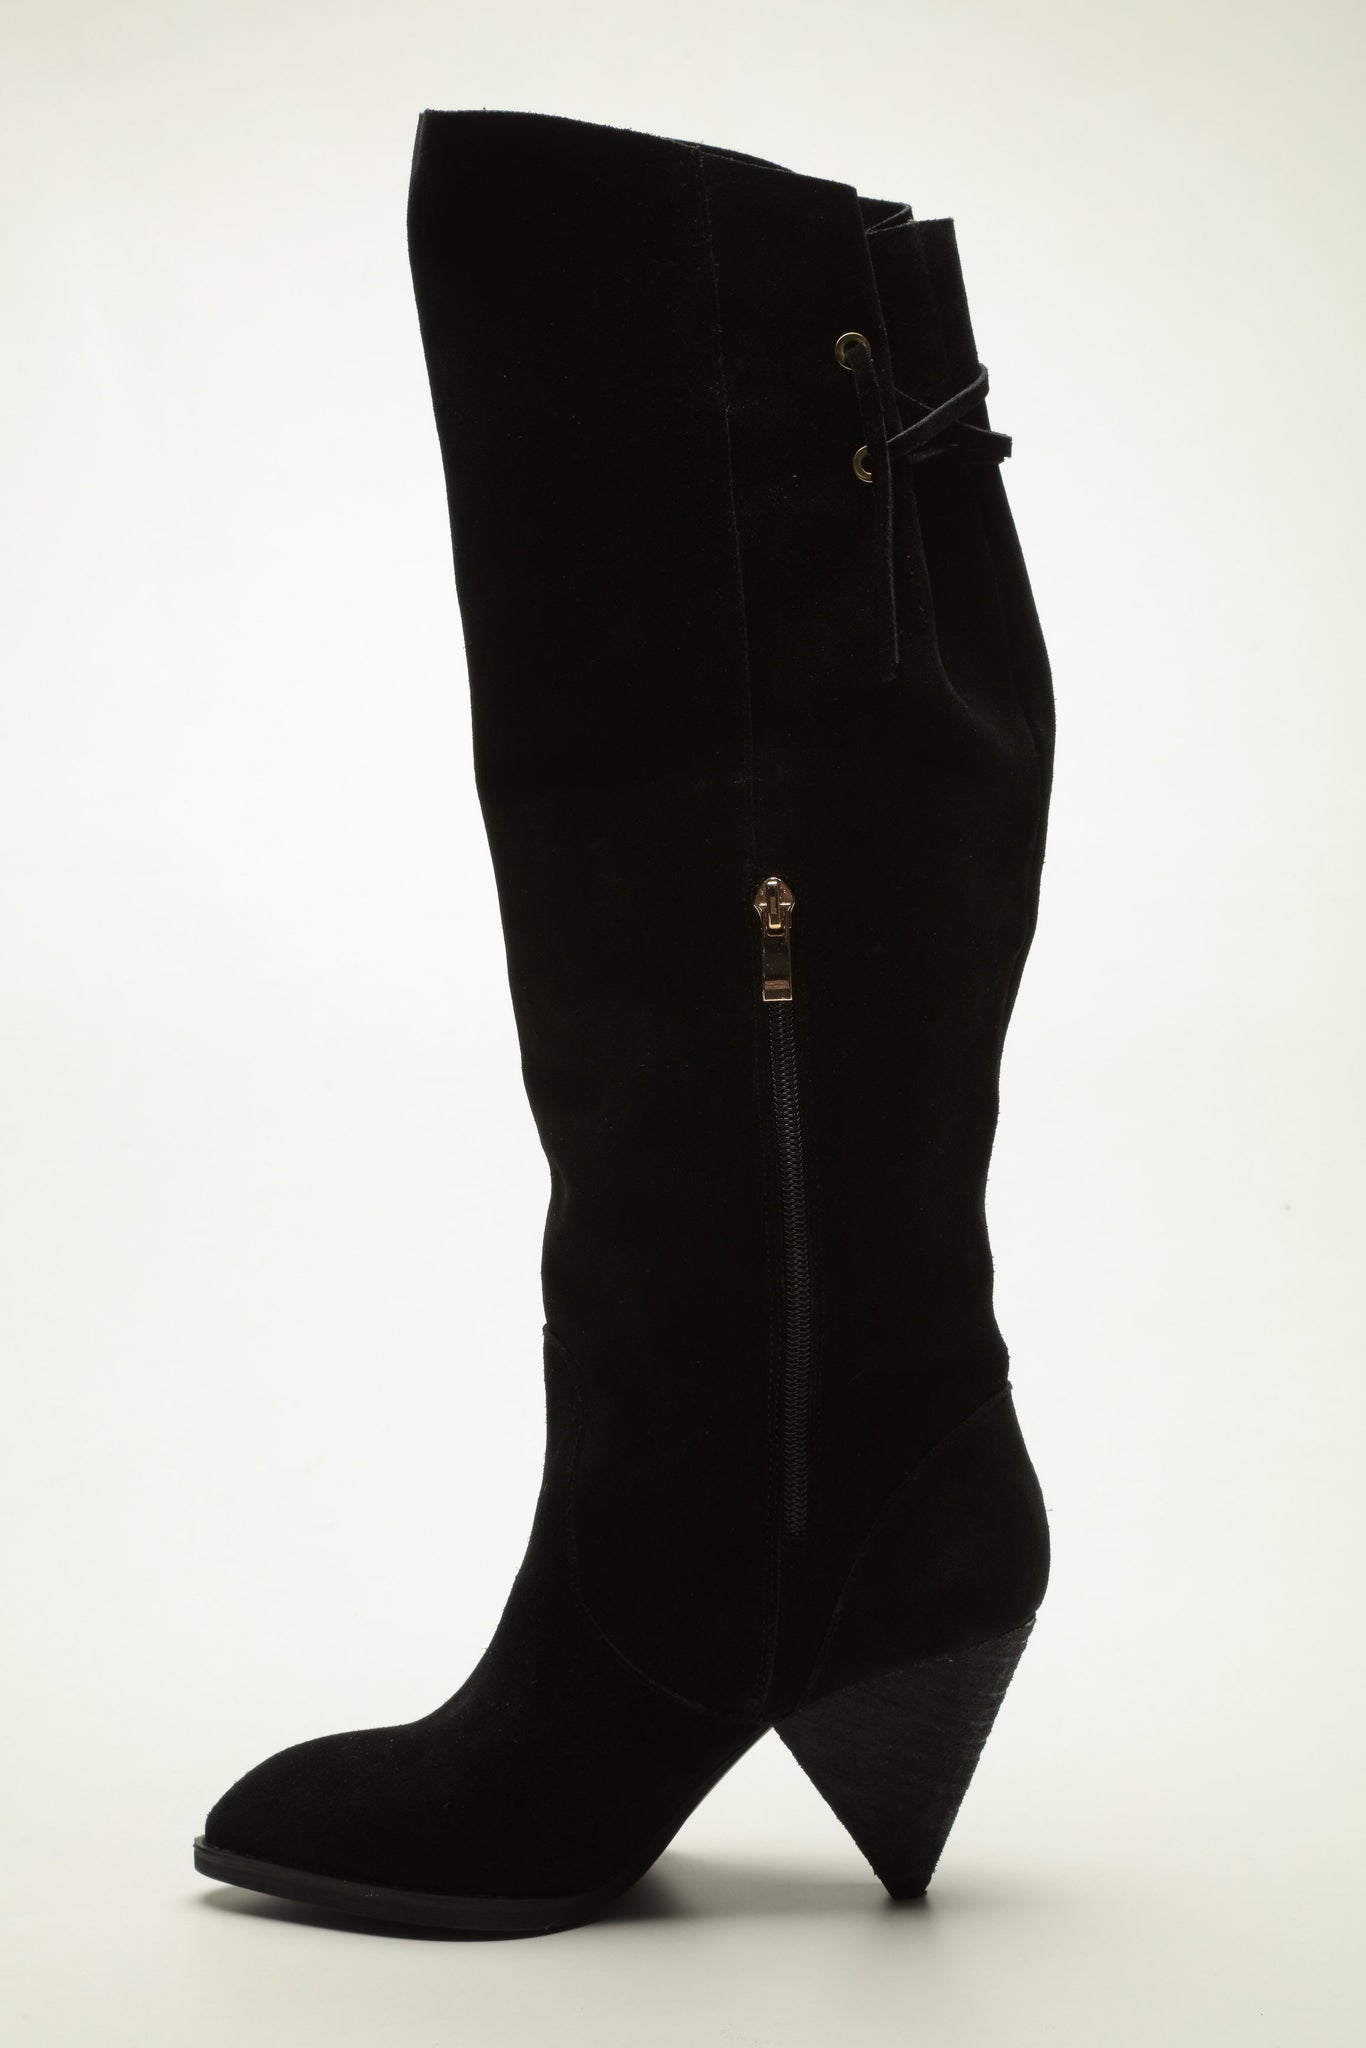 SW18005 knee high black suede boots up to 30% off - Sam Star Shoes